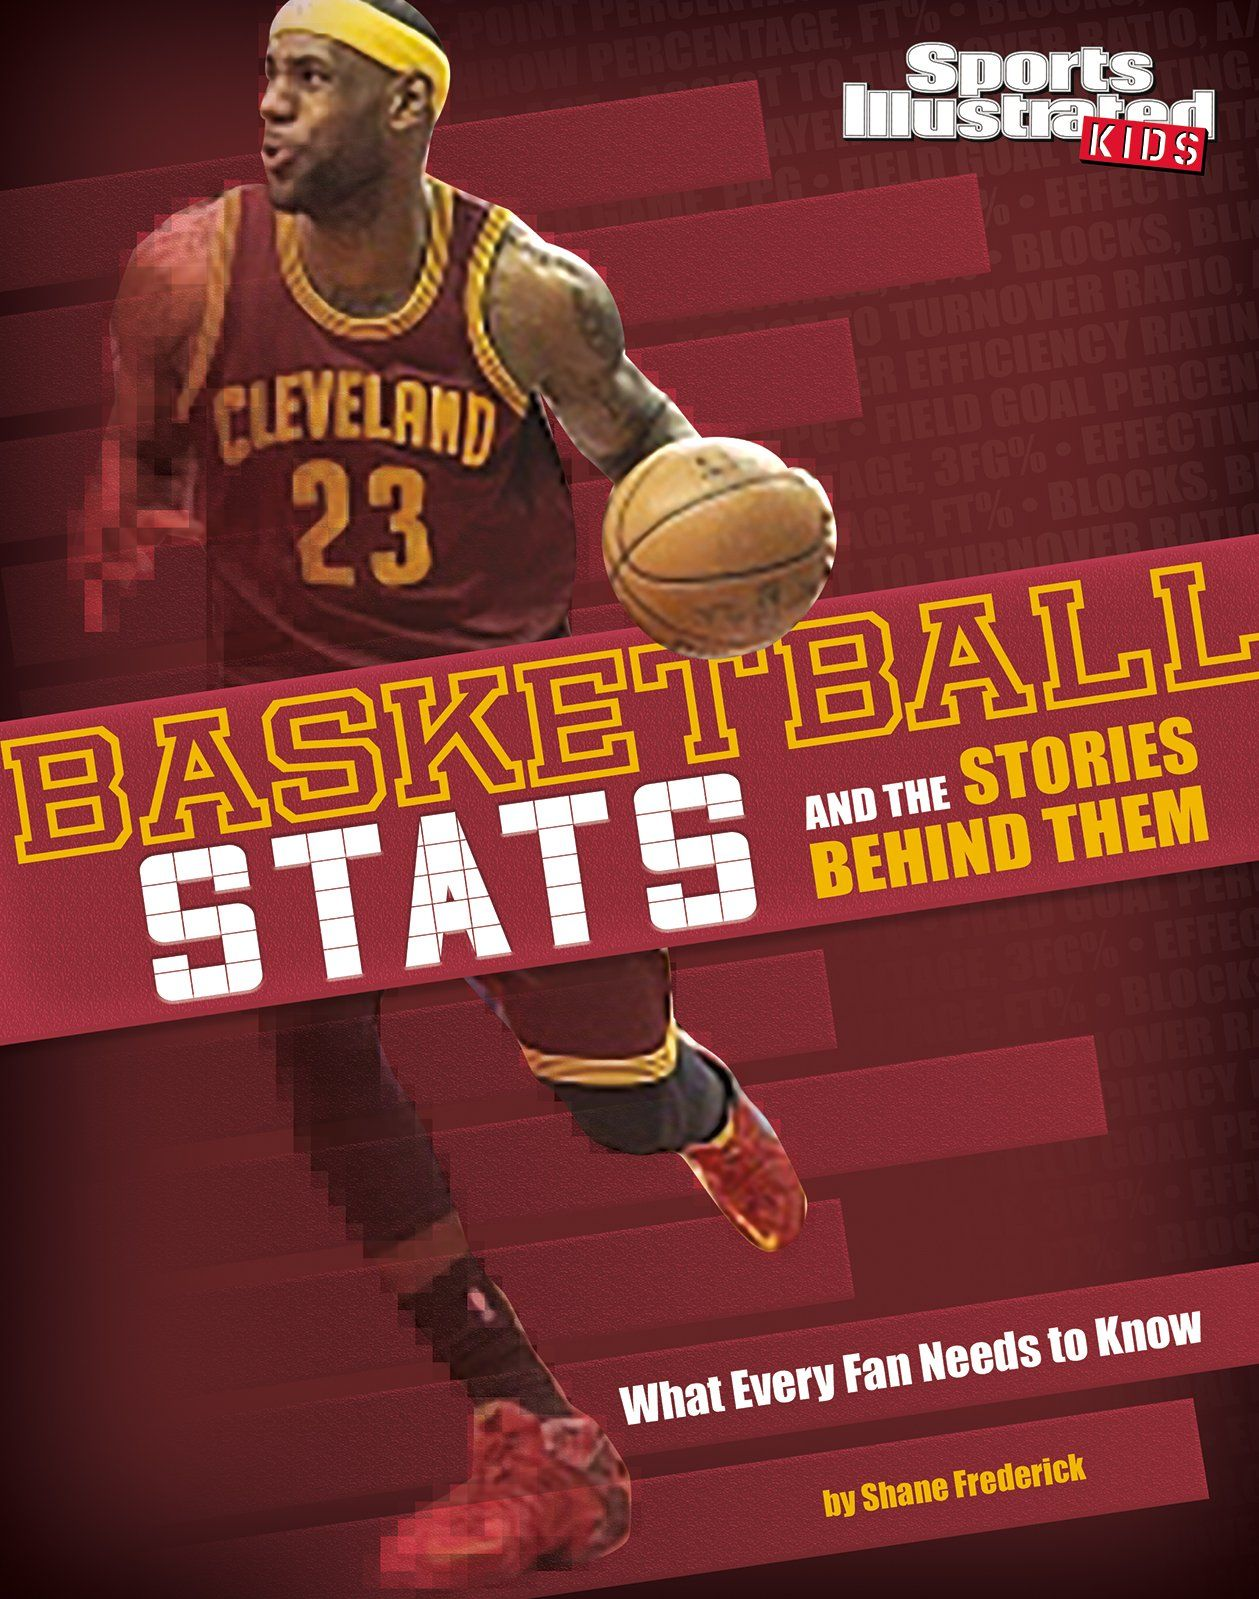 Basketball stats and the stories behind them what every